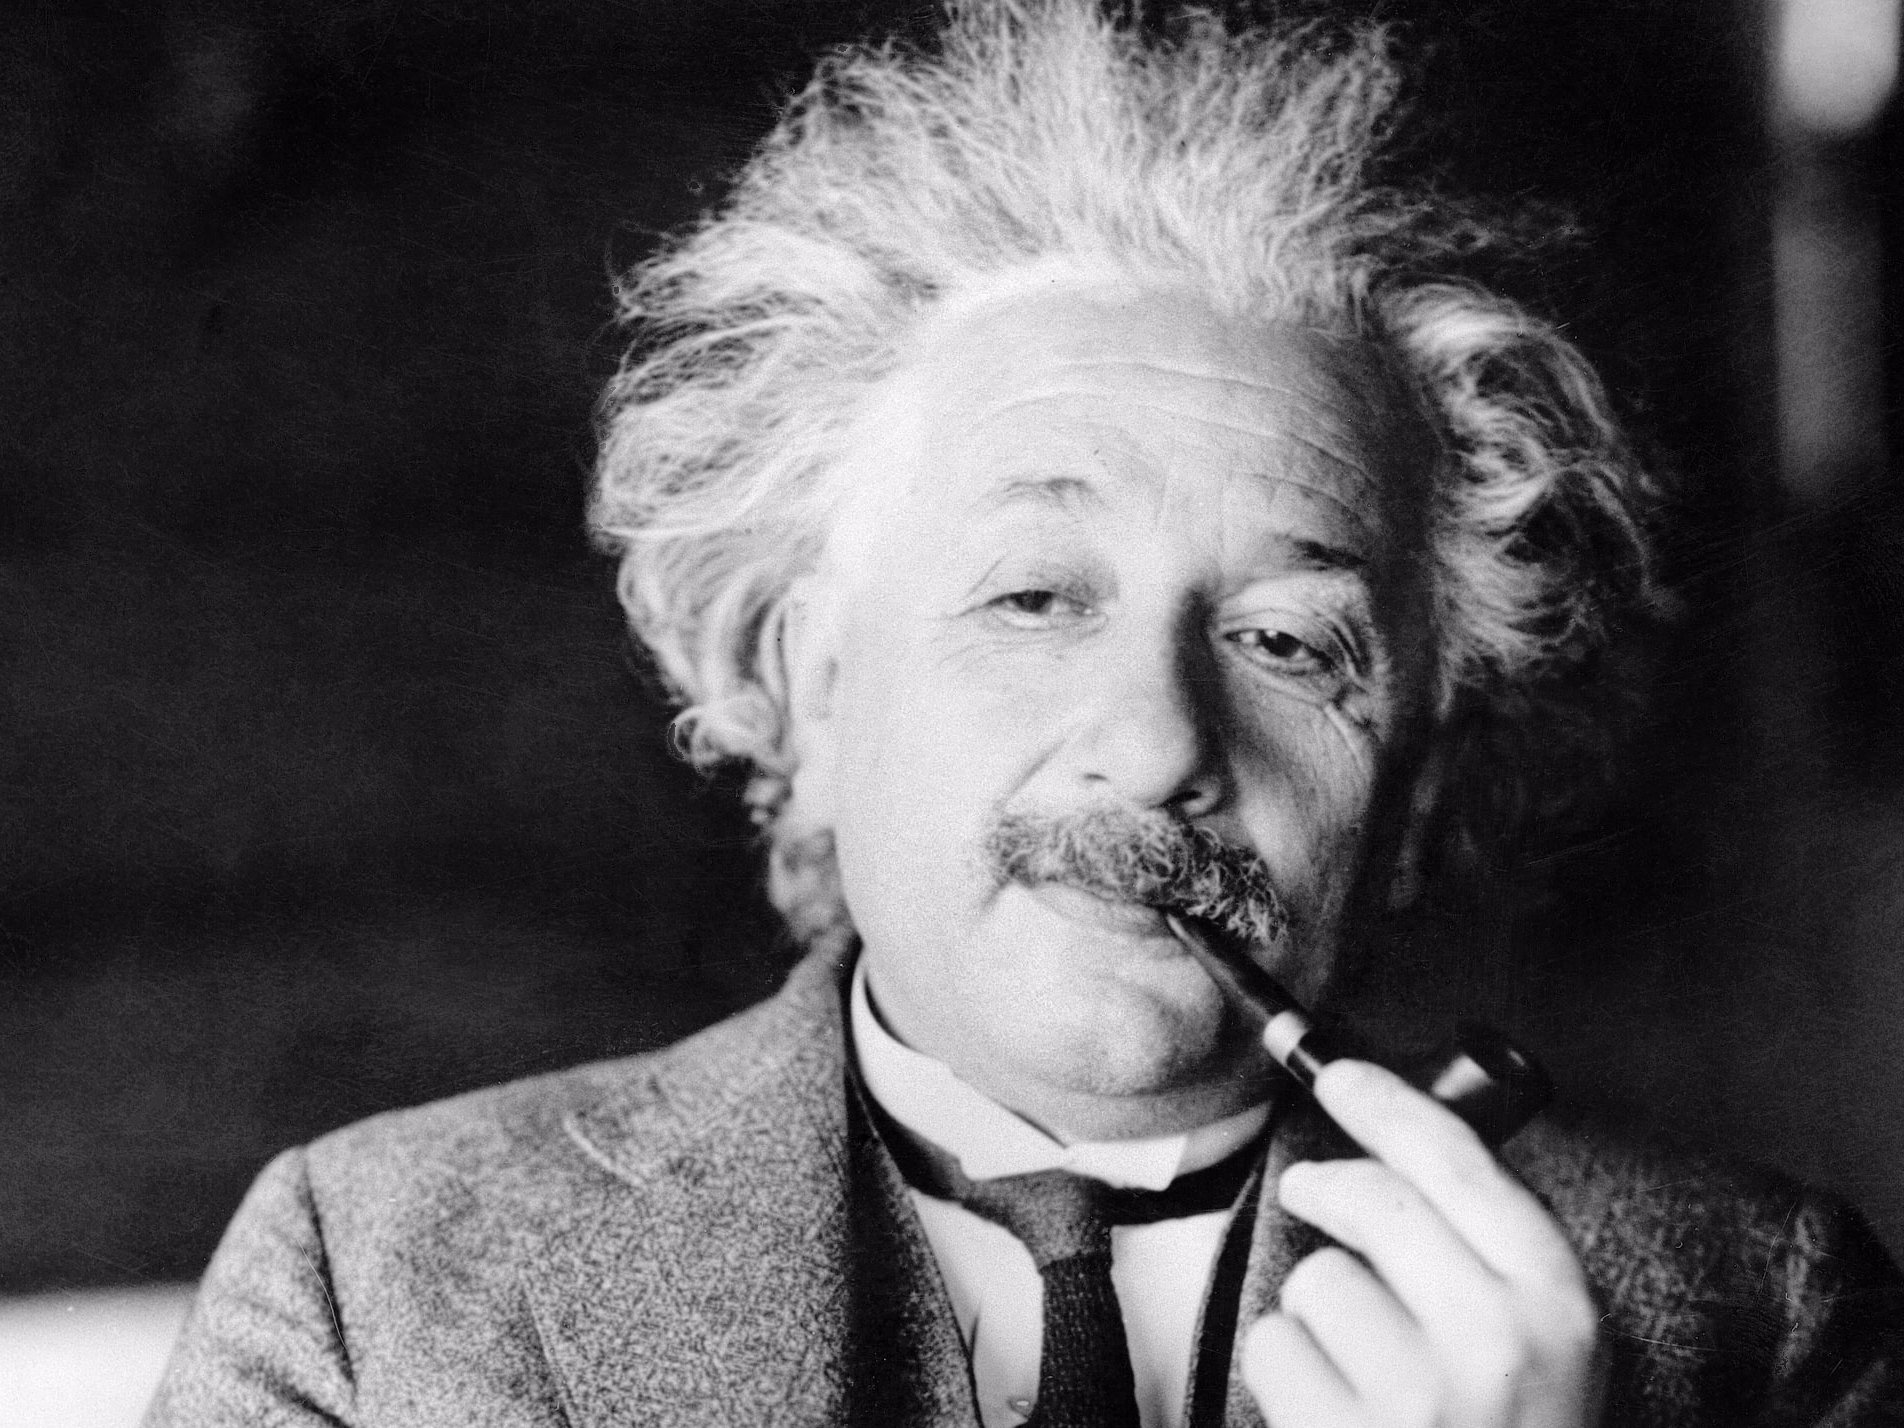 Geniuses aren't born, they're made — and 3 of their daily habits can make you smarter